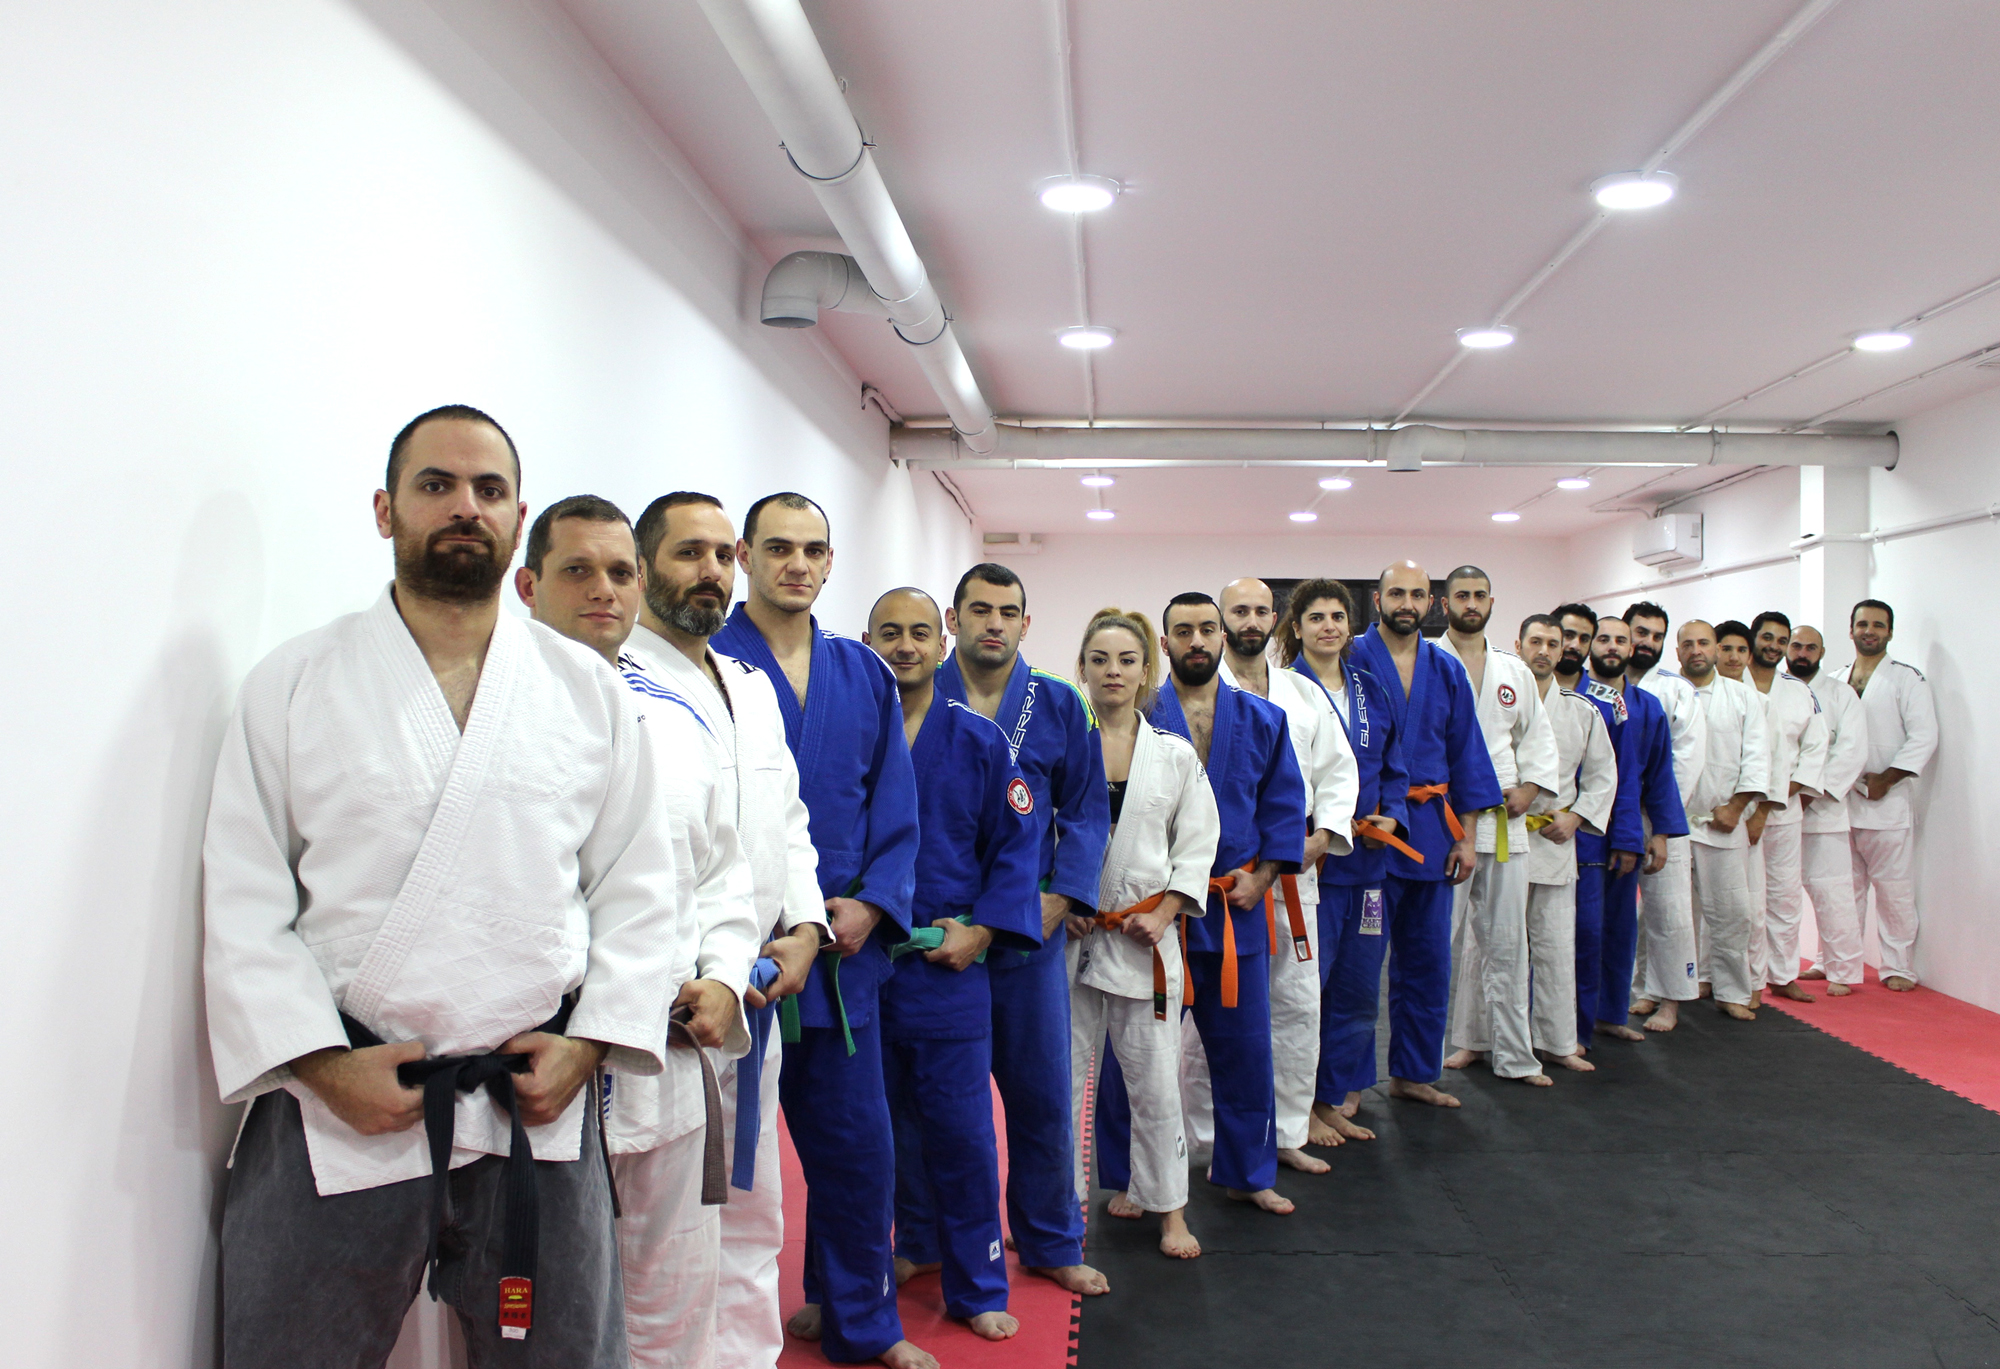 The Guru Academy Lebanon